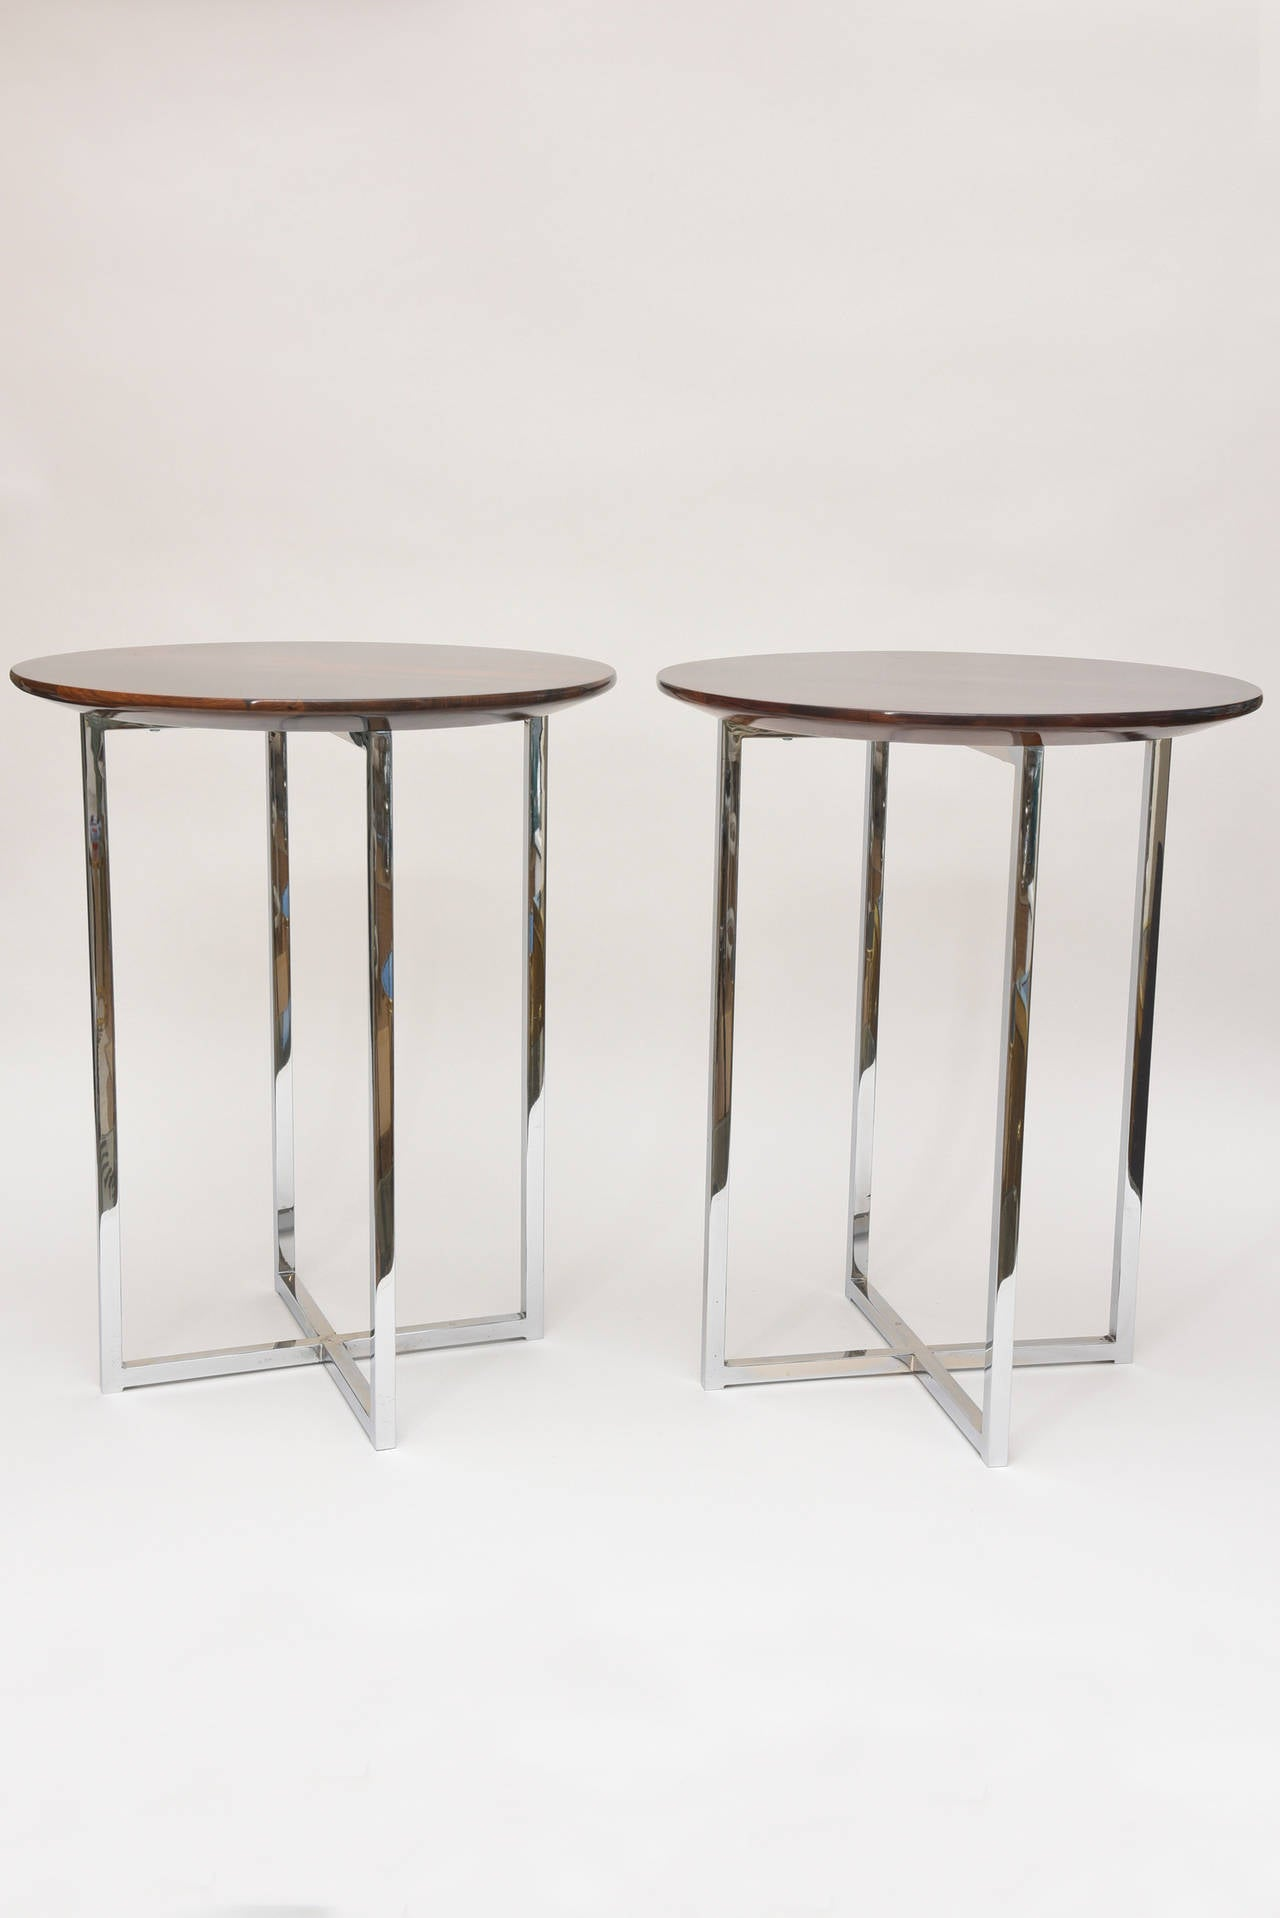 These sculptural versatile, stunning and timeless side tables of Milo Baughman have the most beautiful exotic wood tops. The wood is unknown, but I believe of Italian origin. They have a high polish on top. The chrome bases have all been polished.